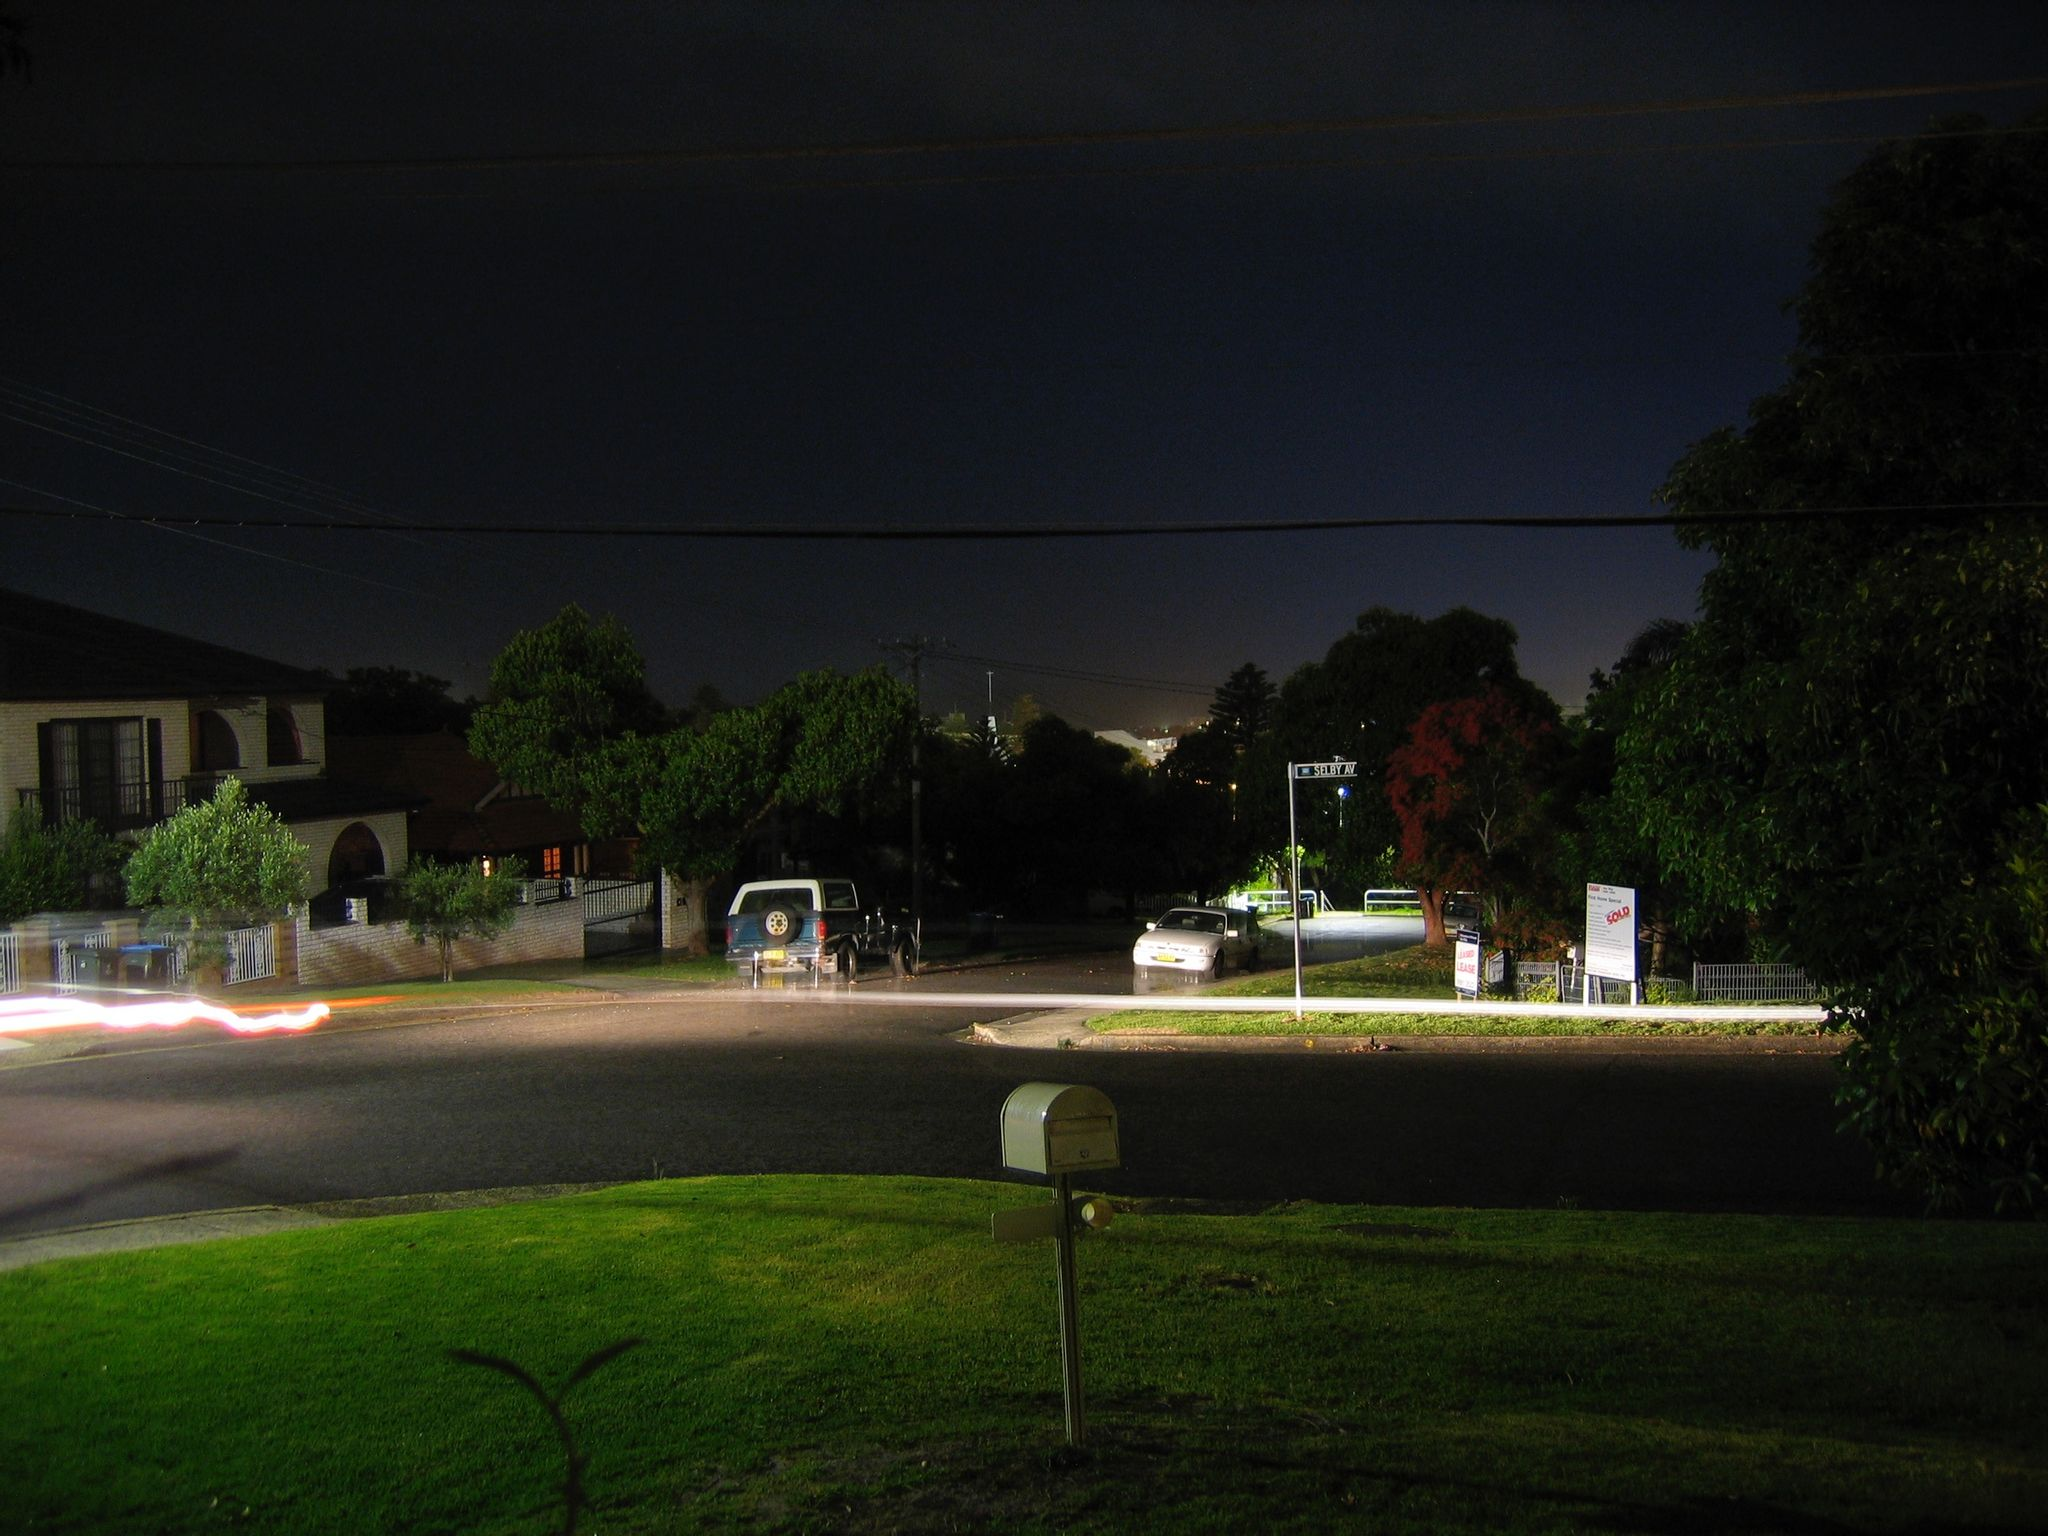 The same long-exposure vantage point from the previous photo except with the streak of a car's headlights going past.